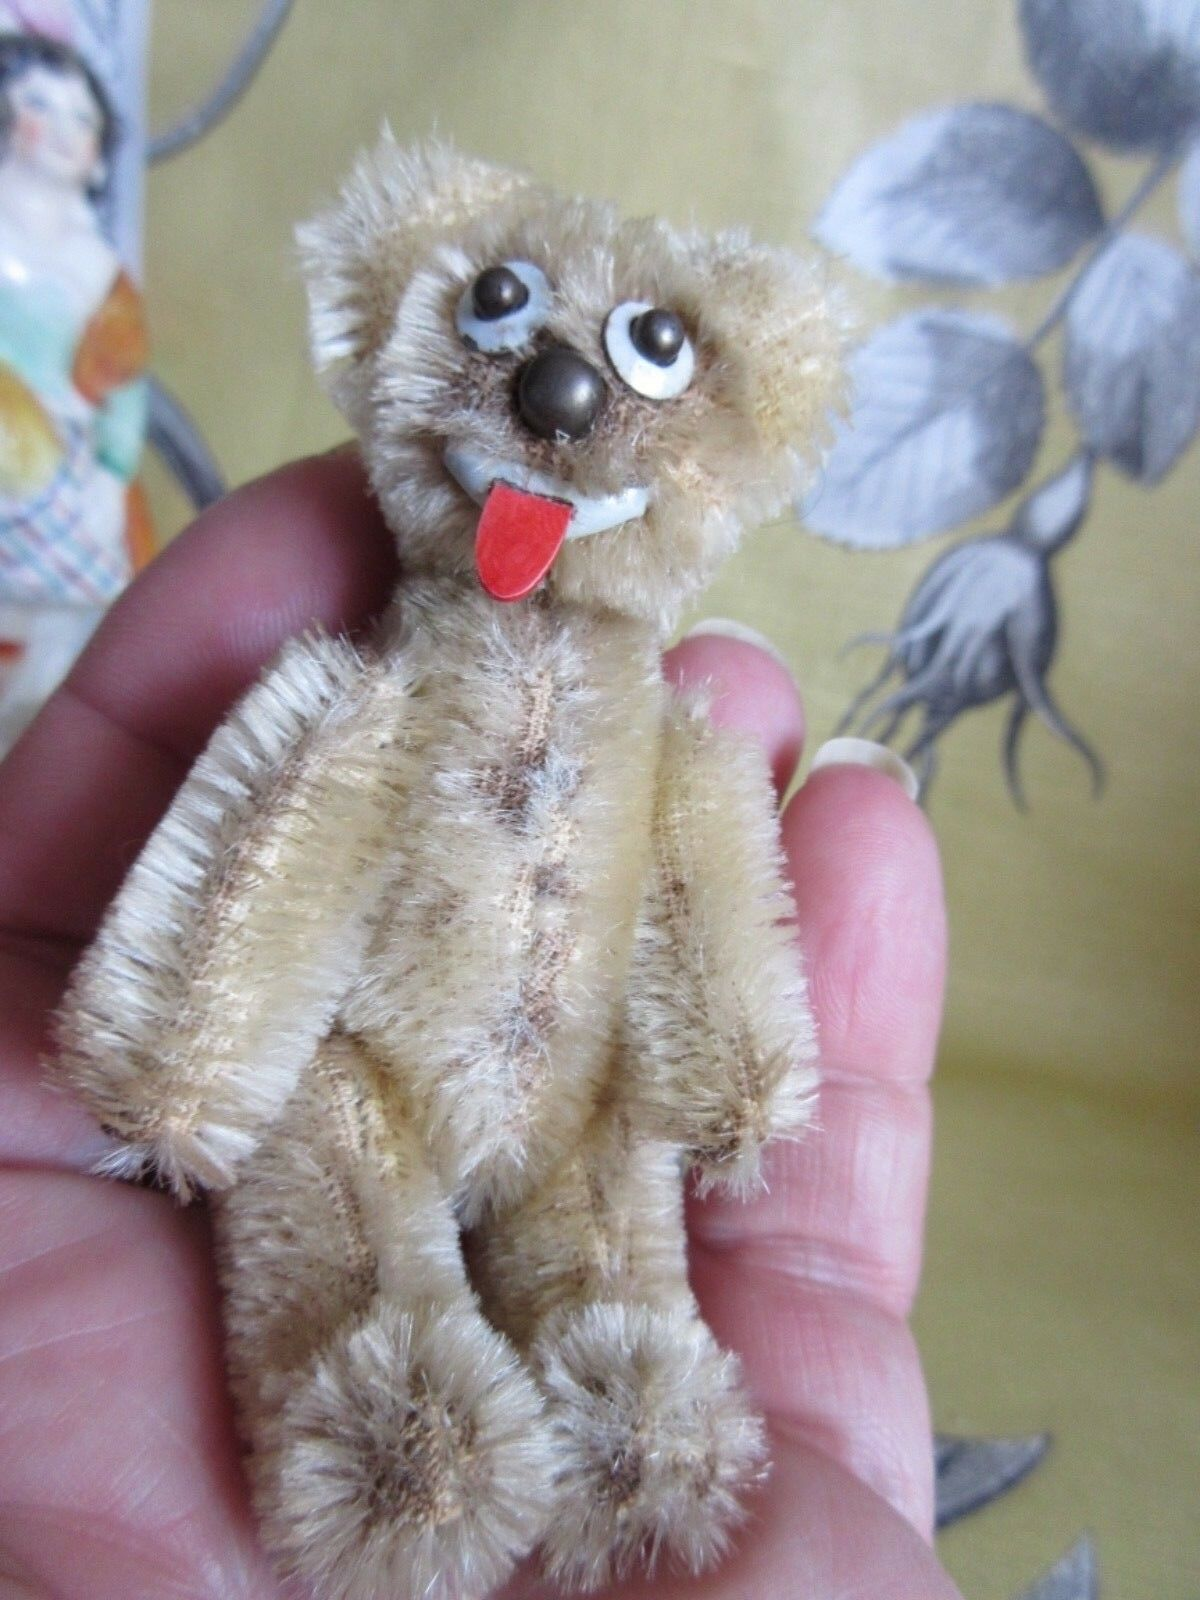 Schuco Janus bear, metal body blonde mohair coverot, fully jointed 1950's